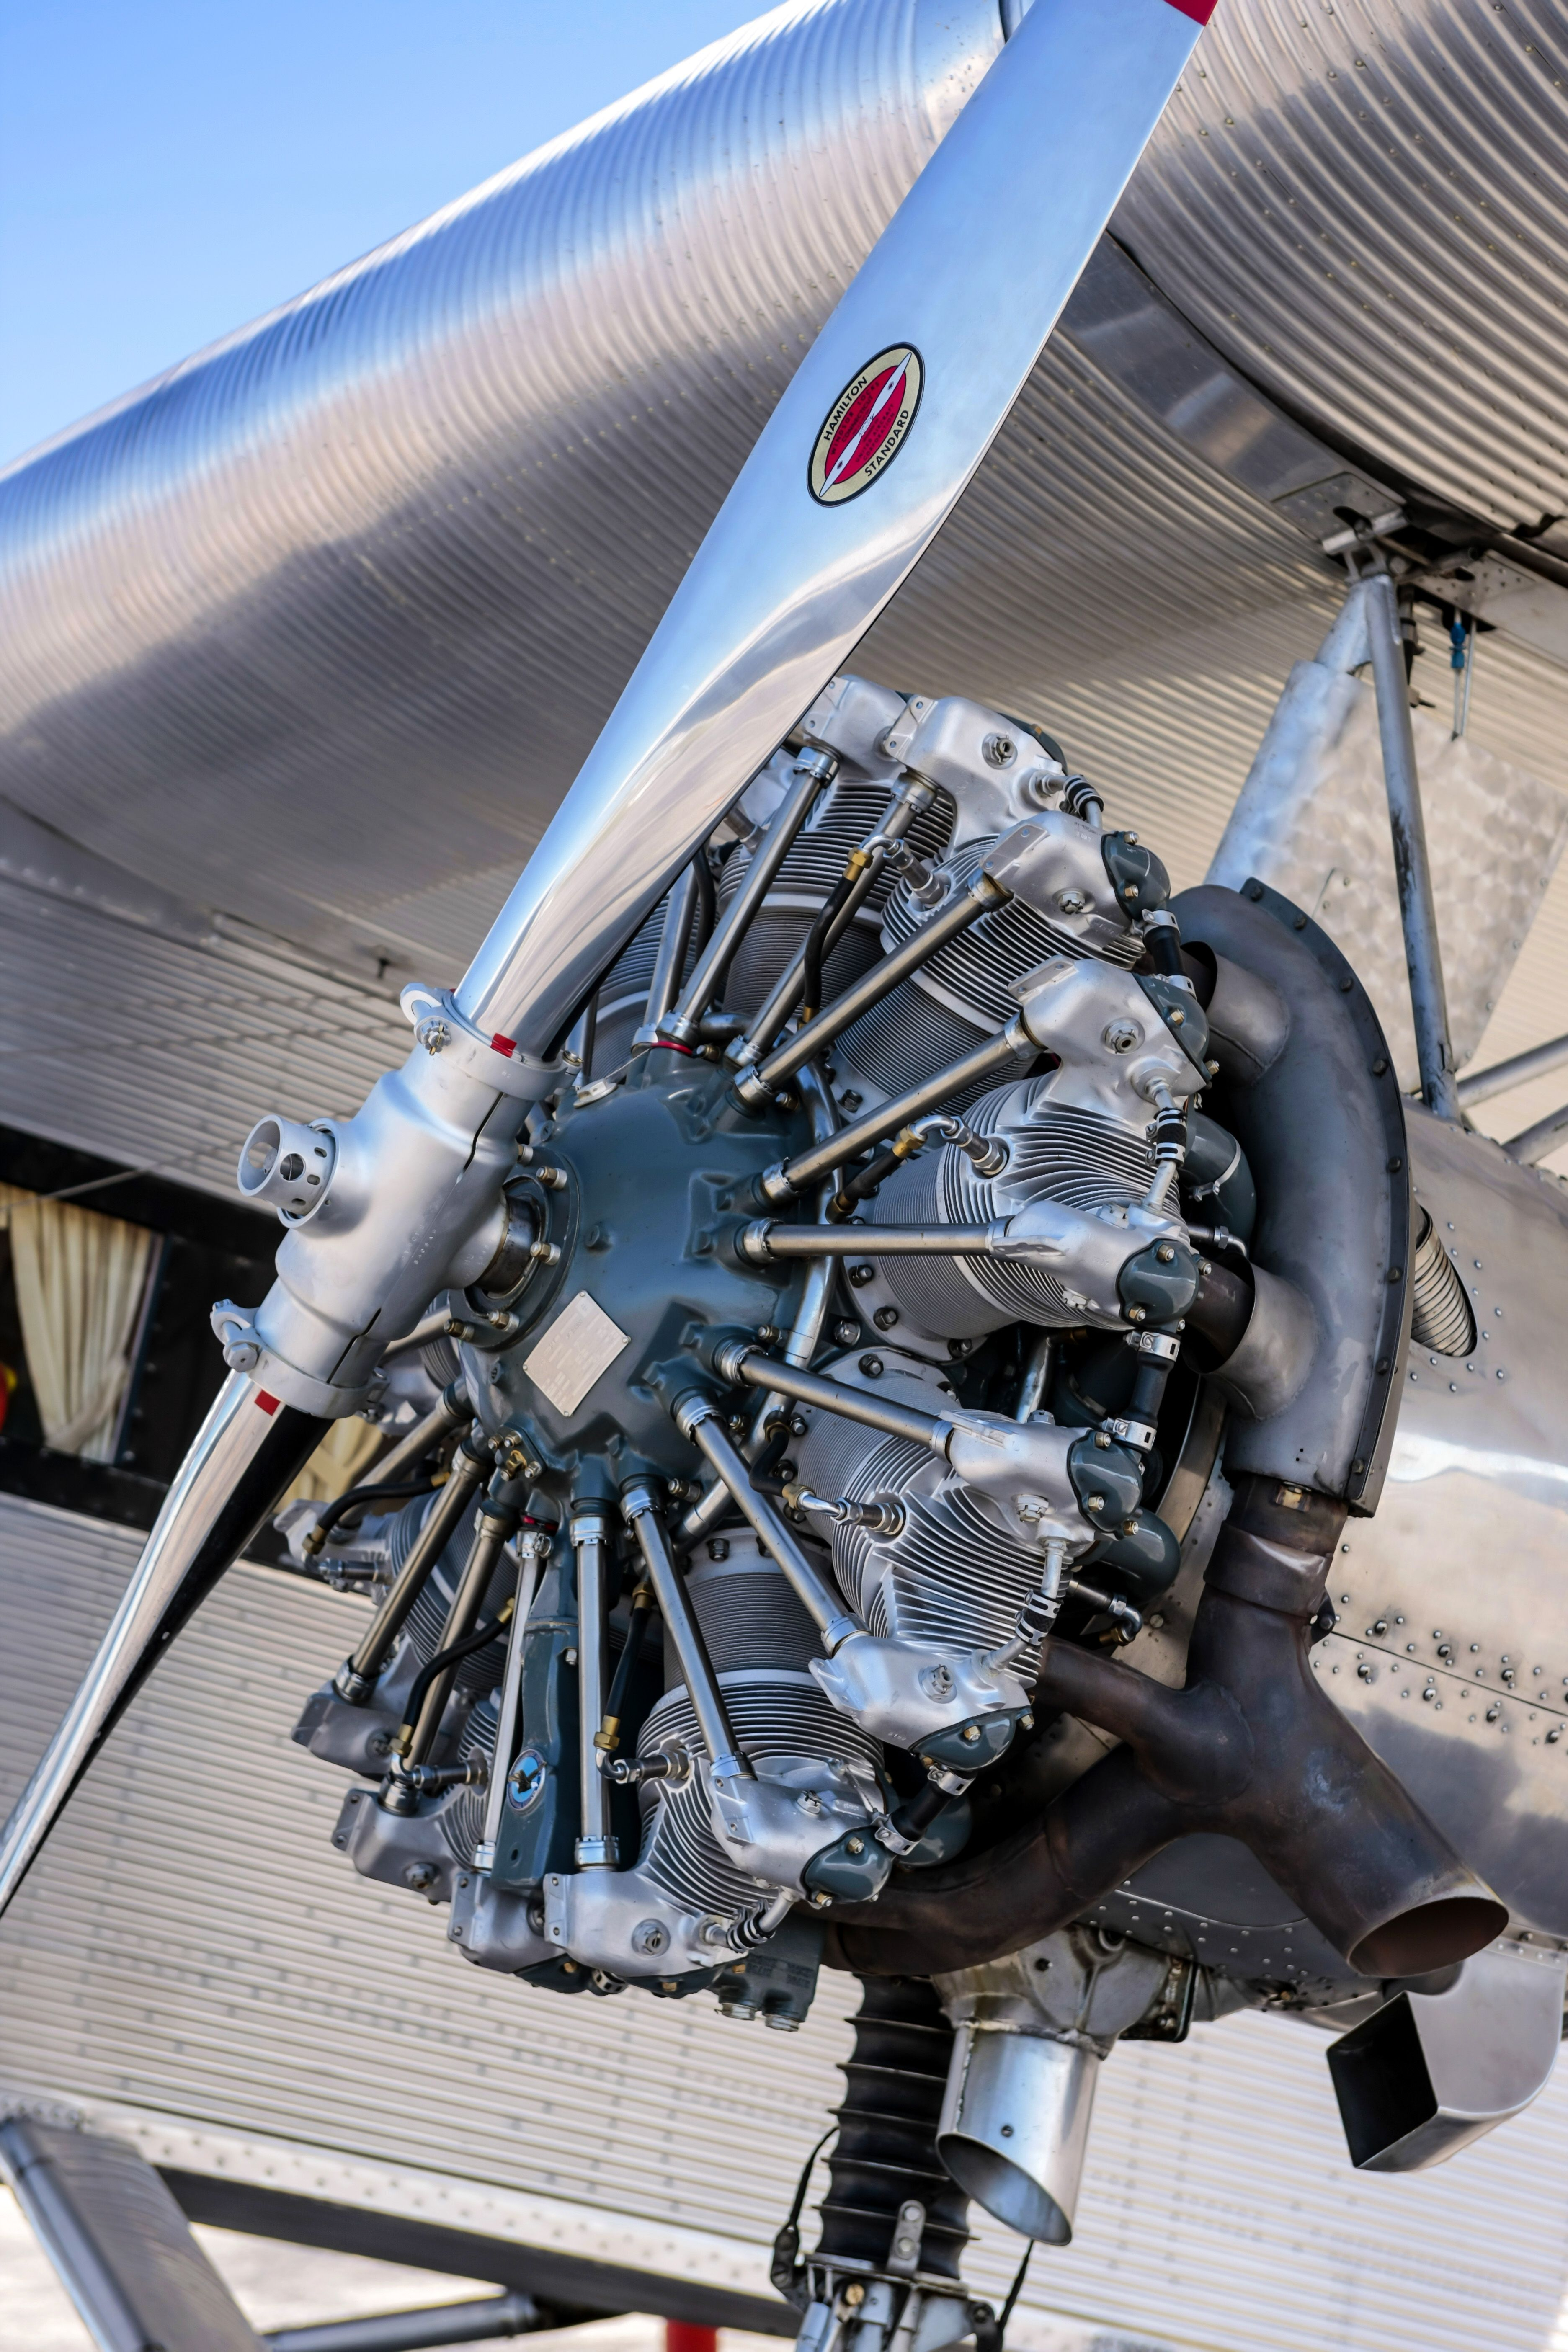 Ford Trimotor Radial engine | Aviation | Aircraft propeller, Radial